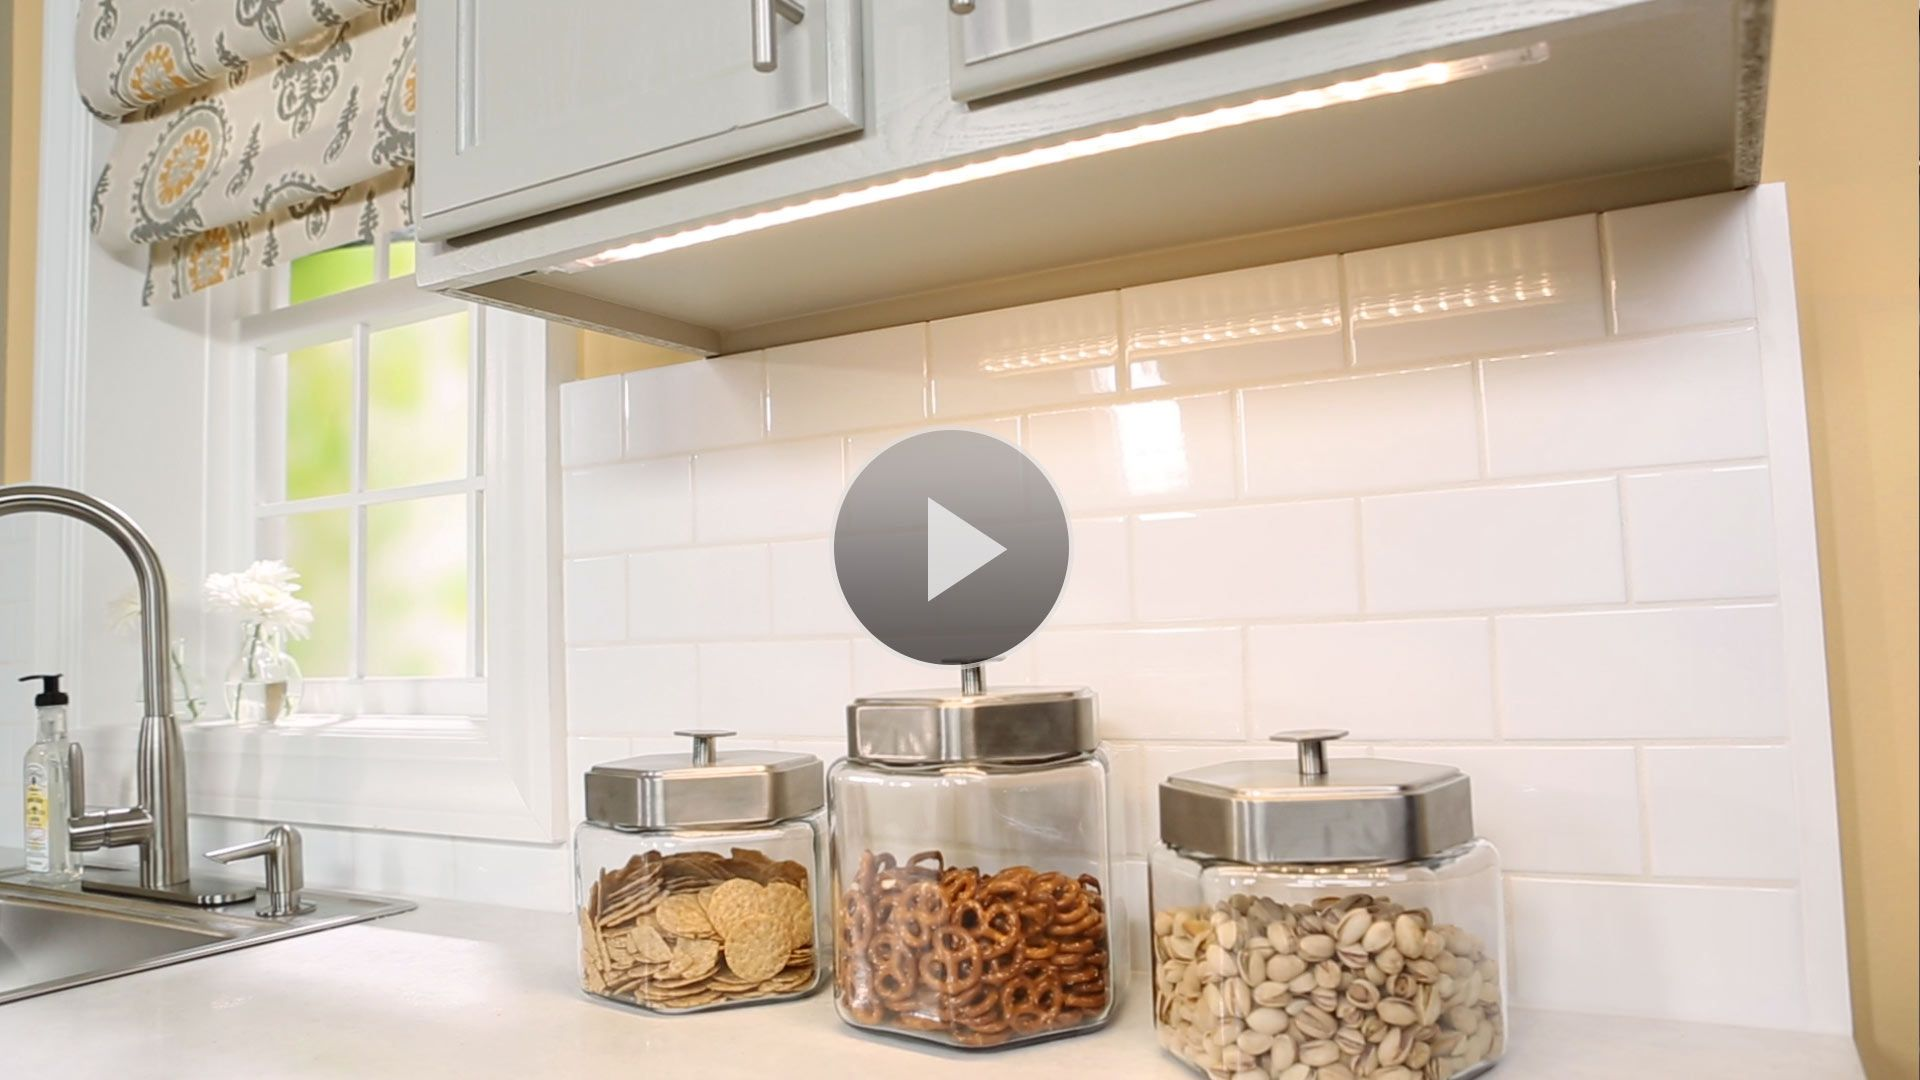 The Easiest Way To Add More Light To Your Kitchen  Gardens Custom Kitchen Lighting Under Cabinet Review